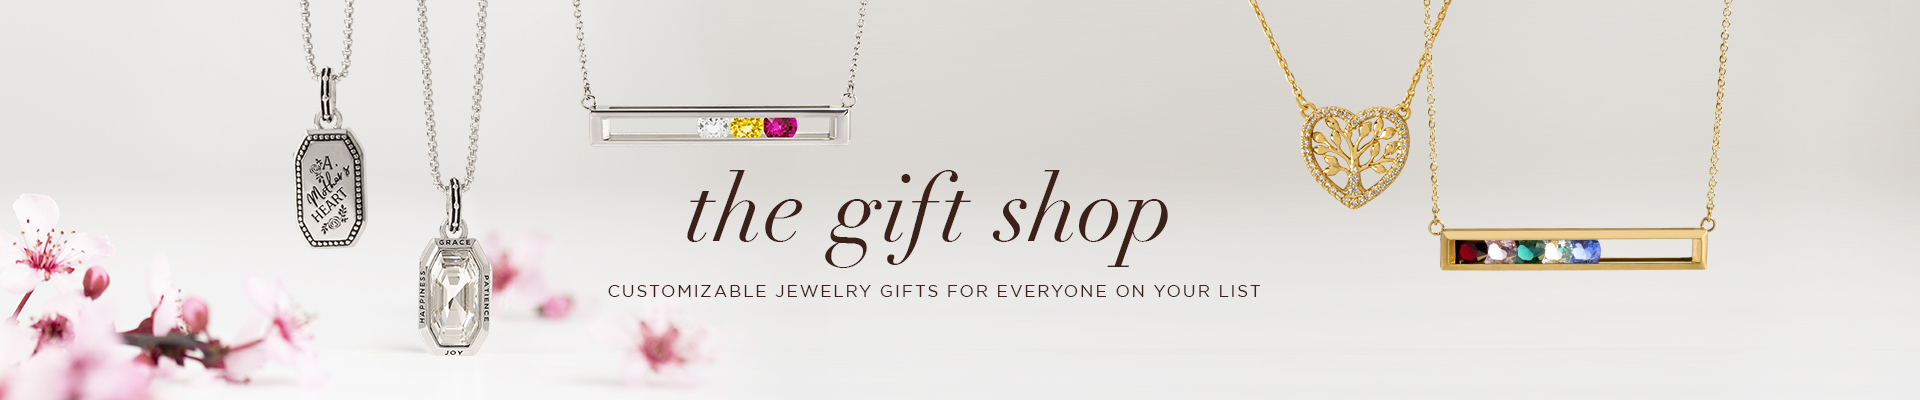 The Gift Shop banner